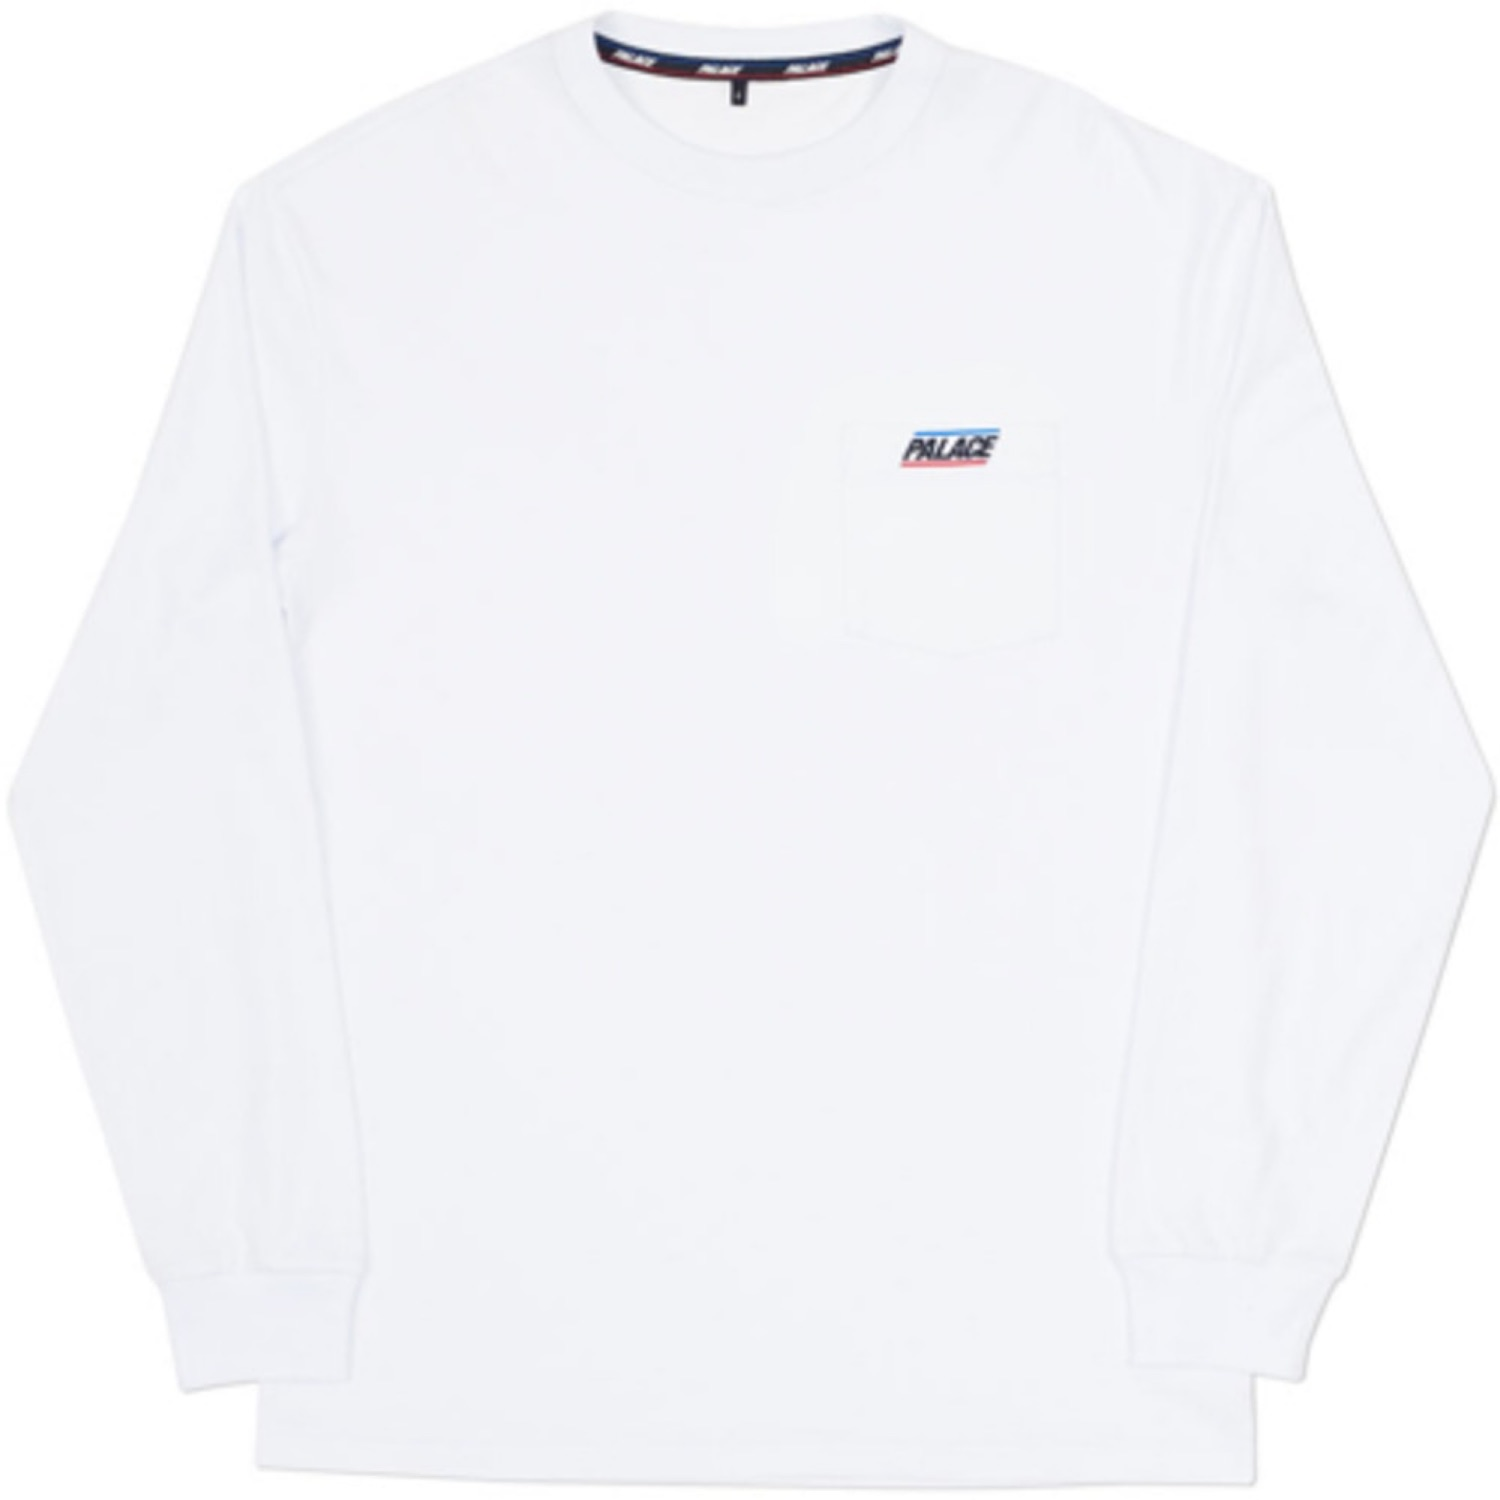 Palace Basically A Pocket Longlseeve